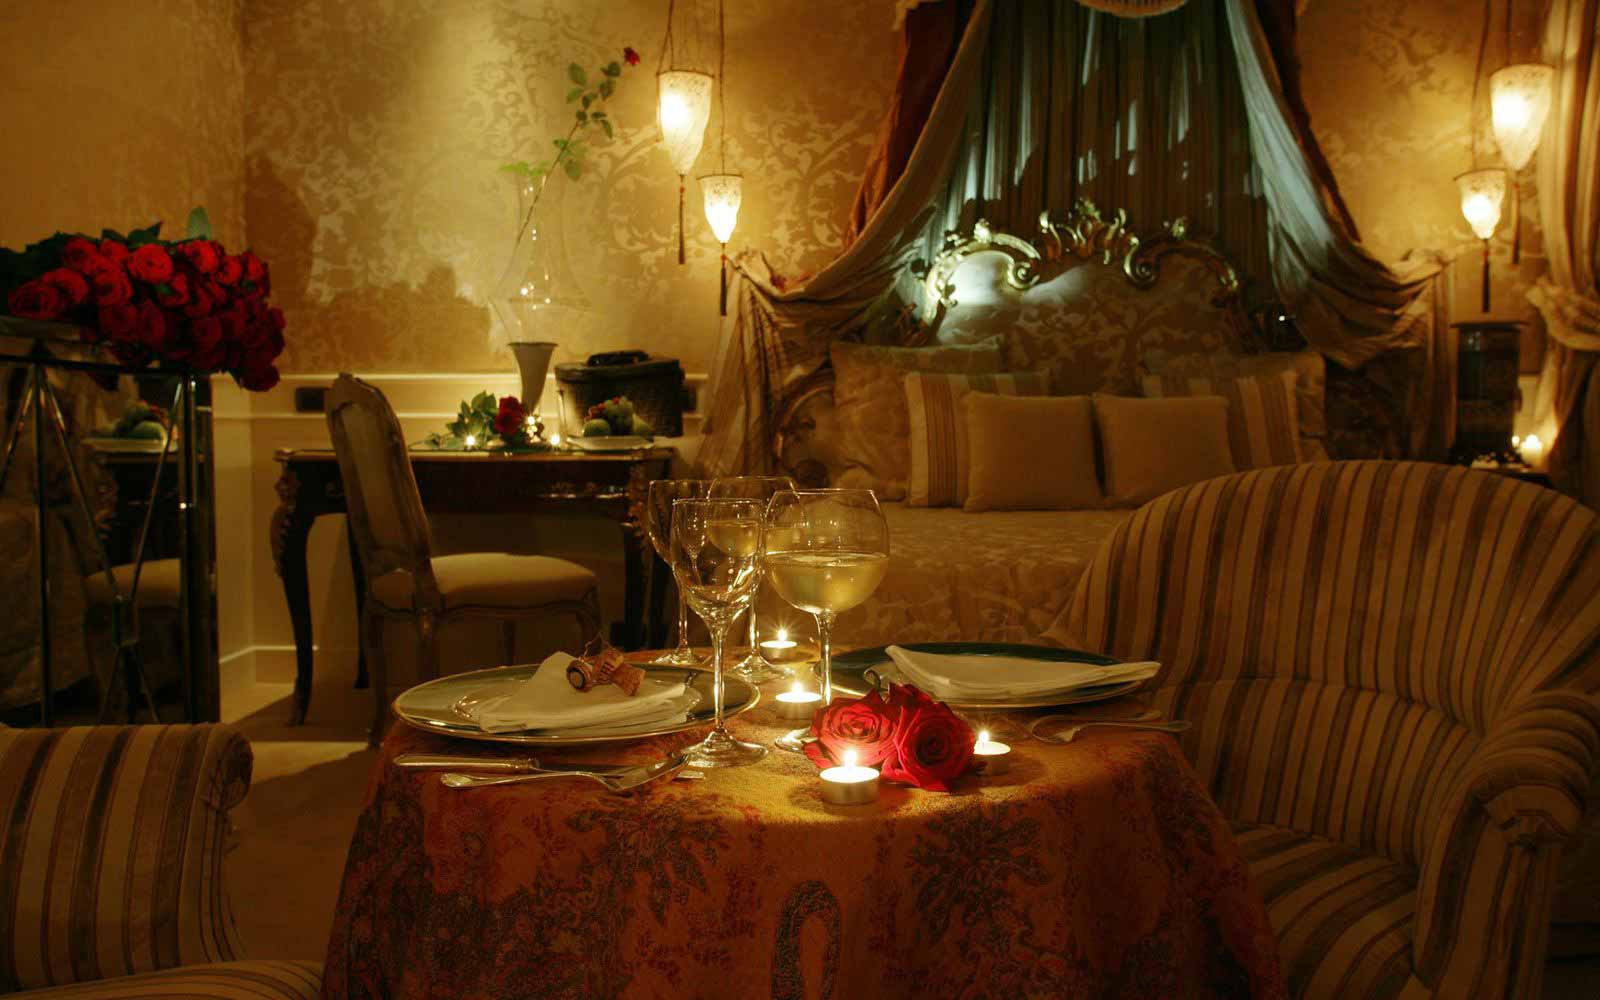 Romantic dinner in the room at Luna Hotel Baglioni